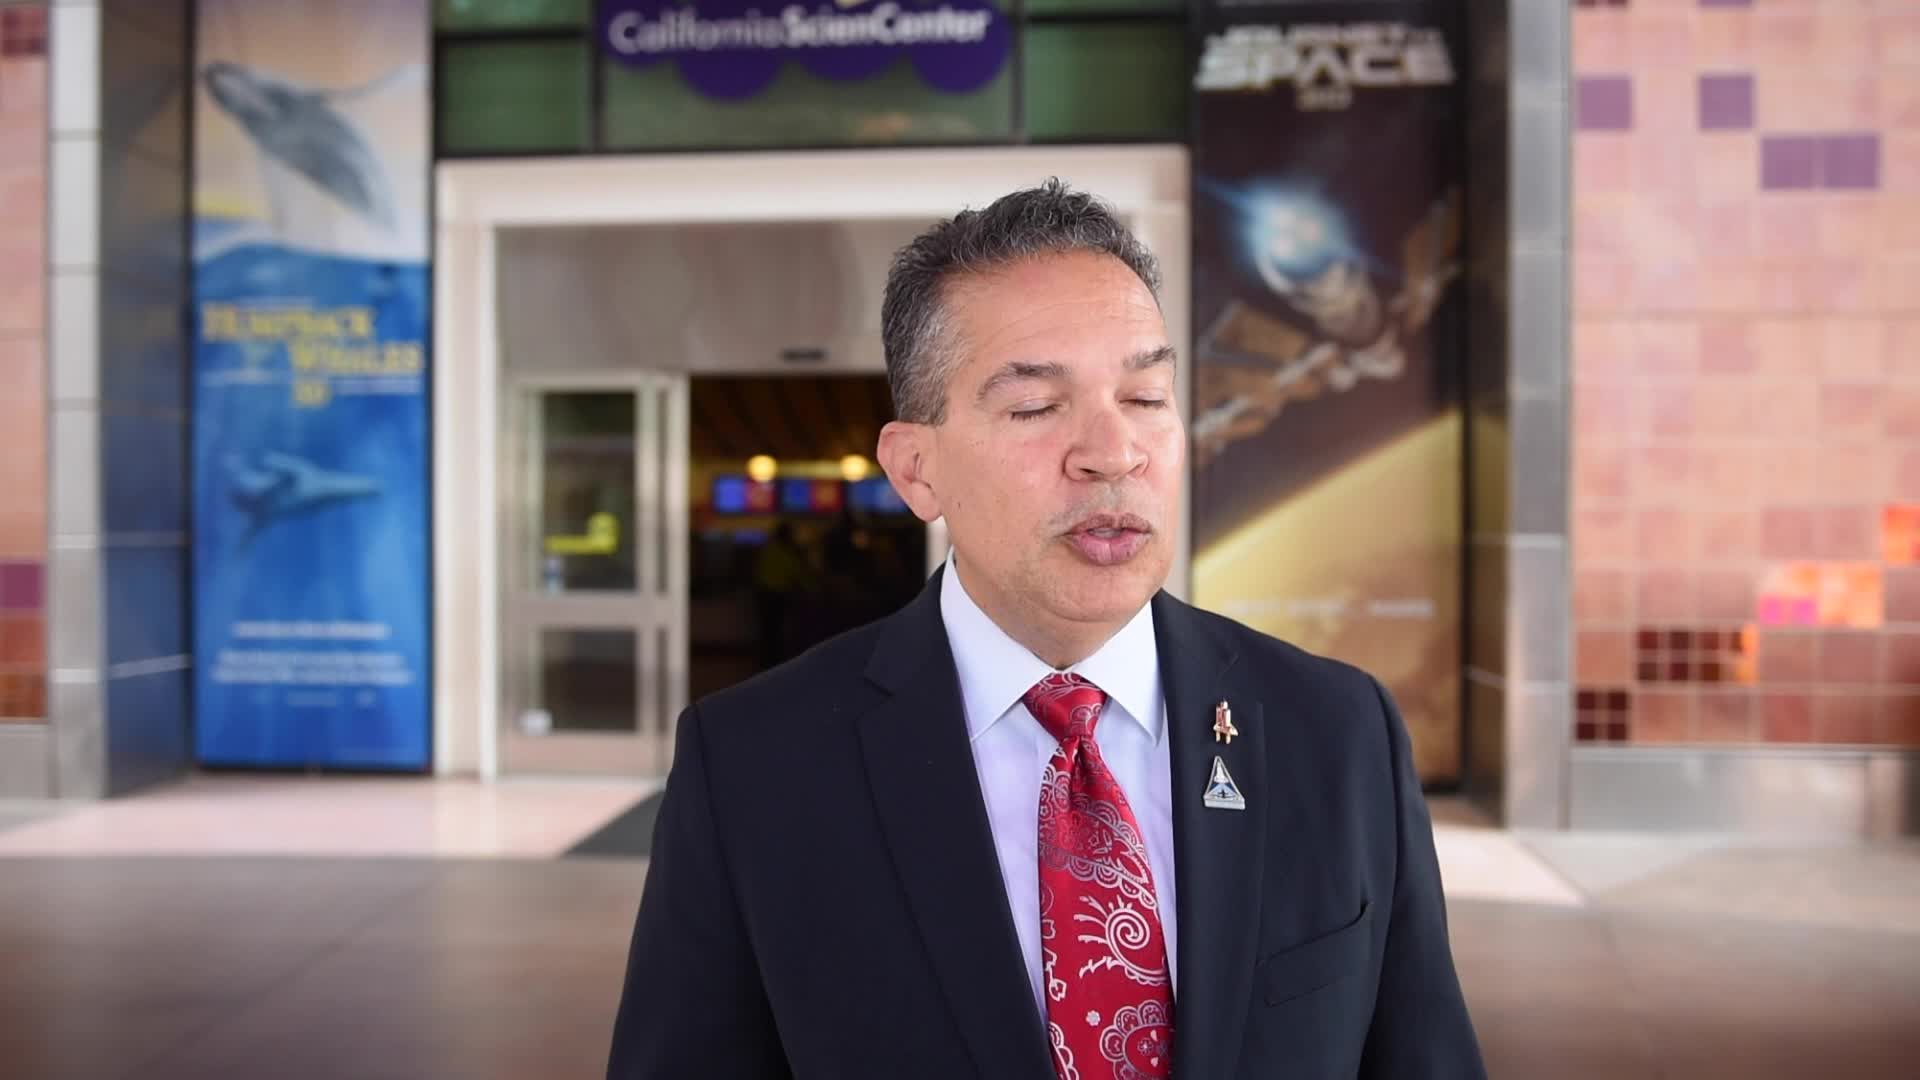 William Harris, Senior Vice President, Development and Marketing at the California Science Center